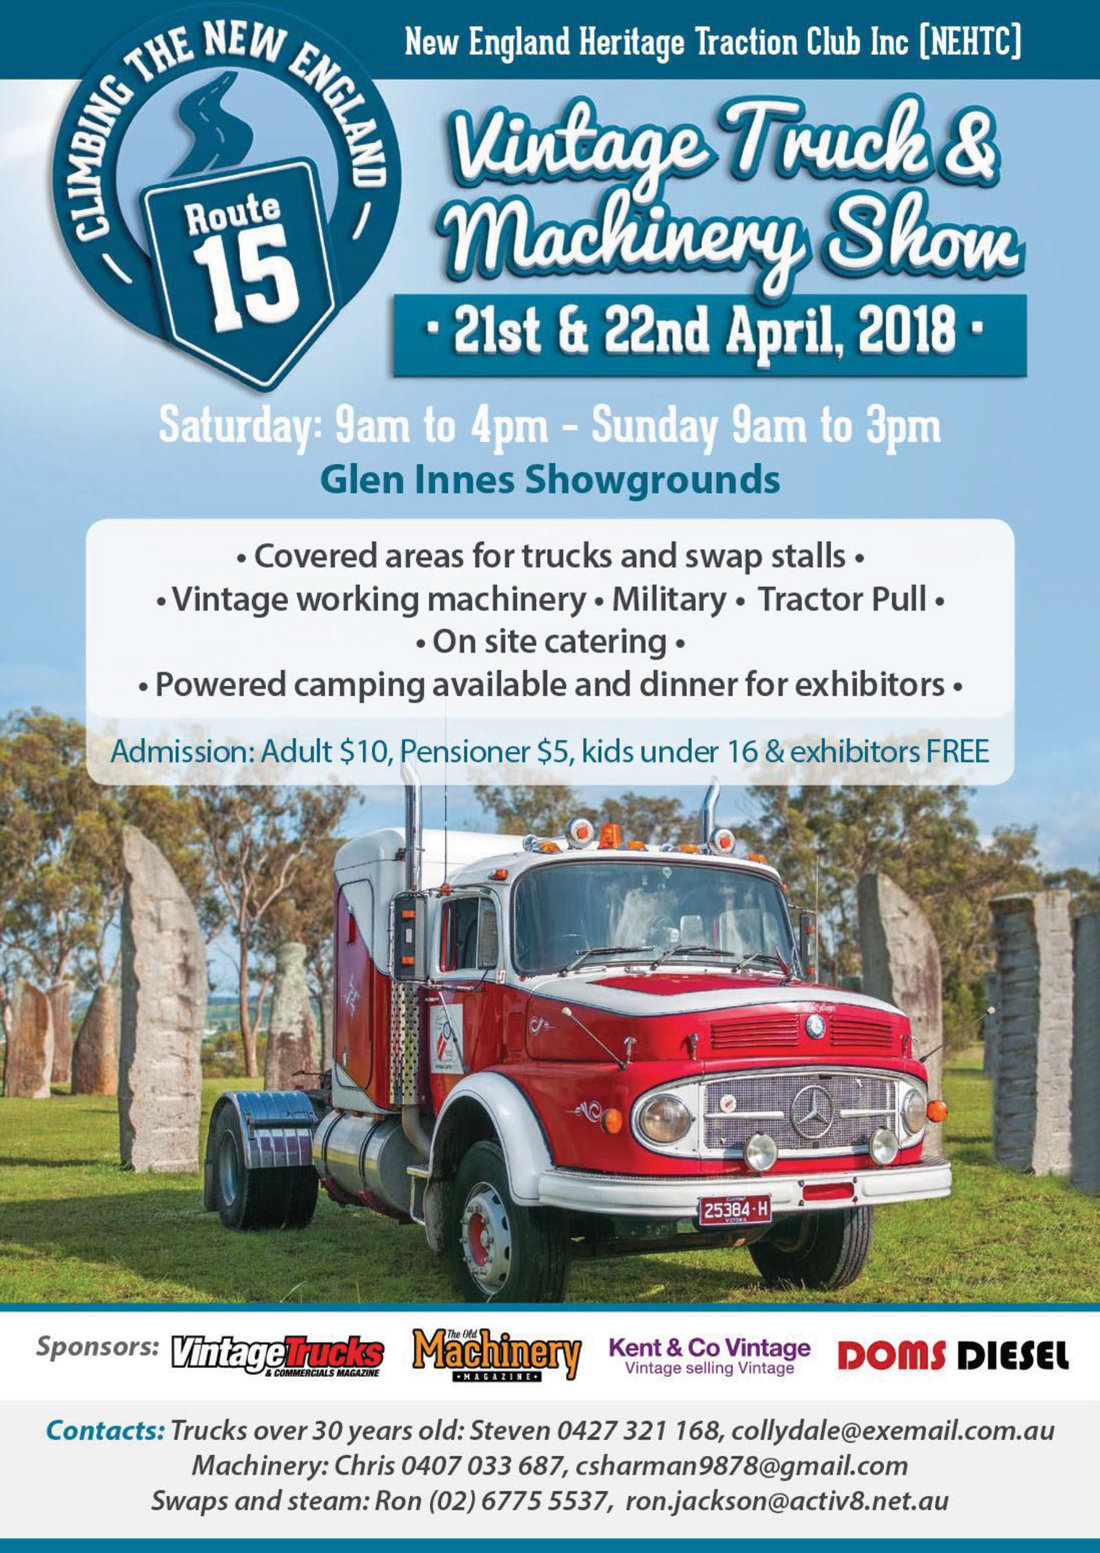 Vintage Truck & Machinery Show